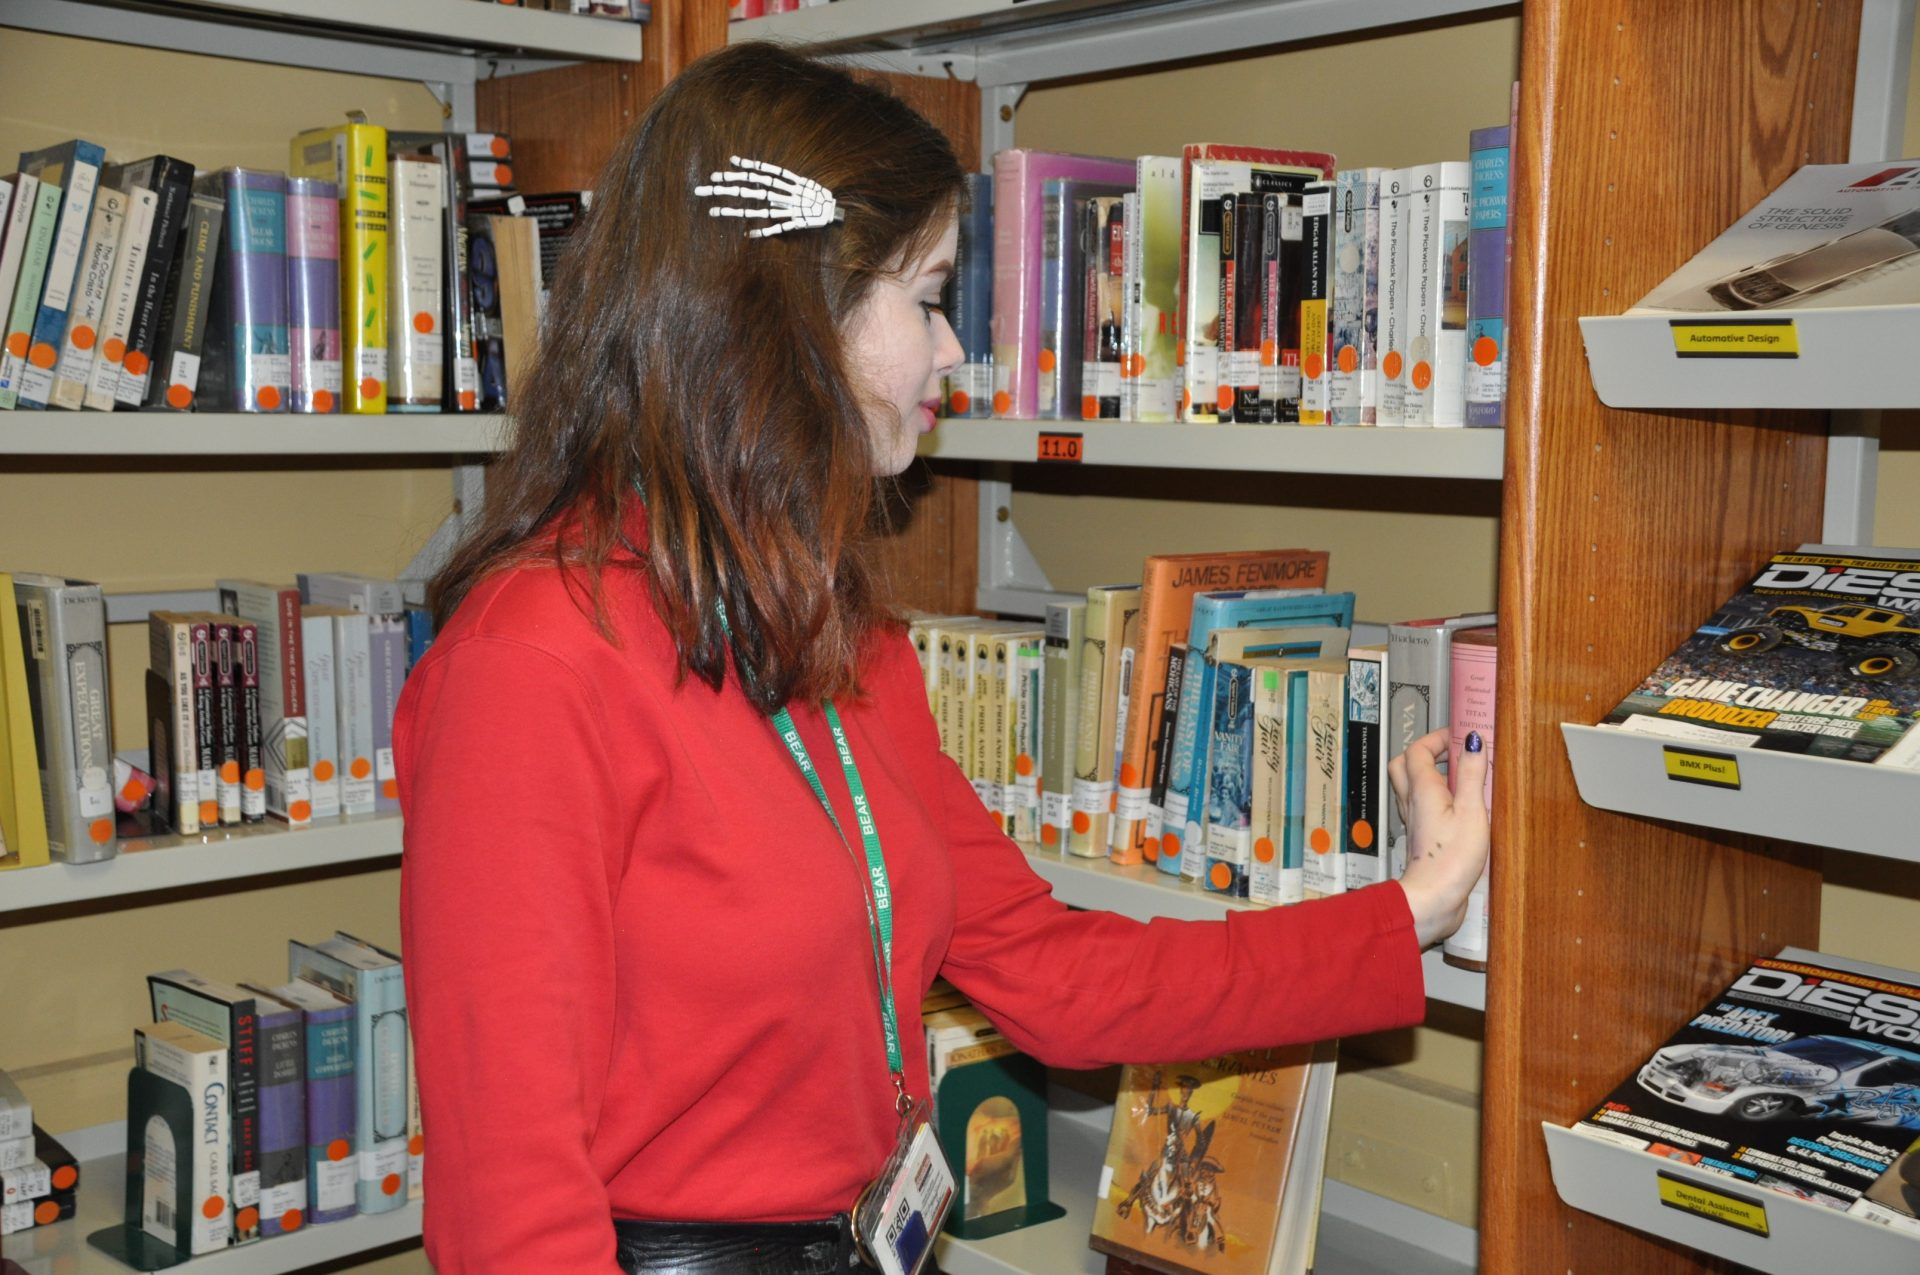 Student looking at a book in the library